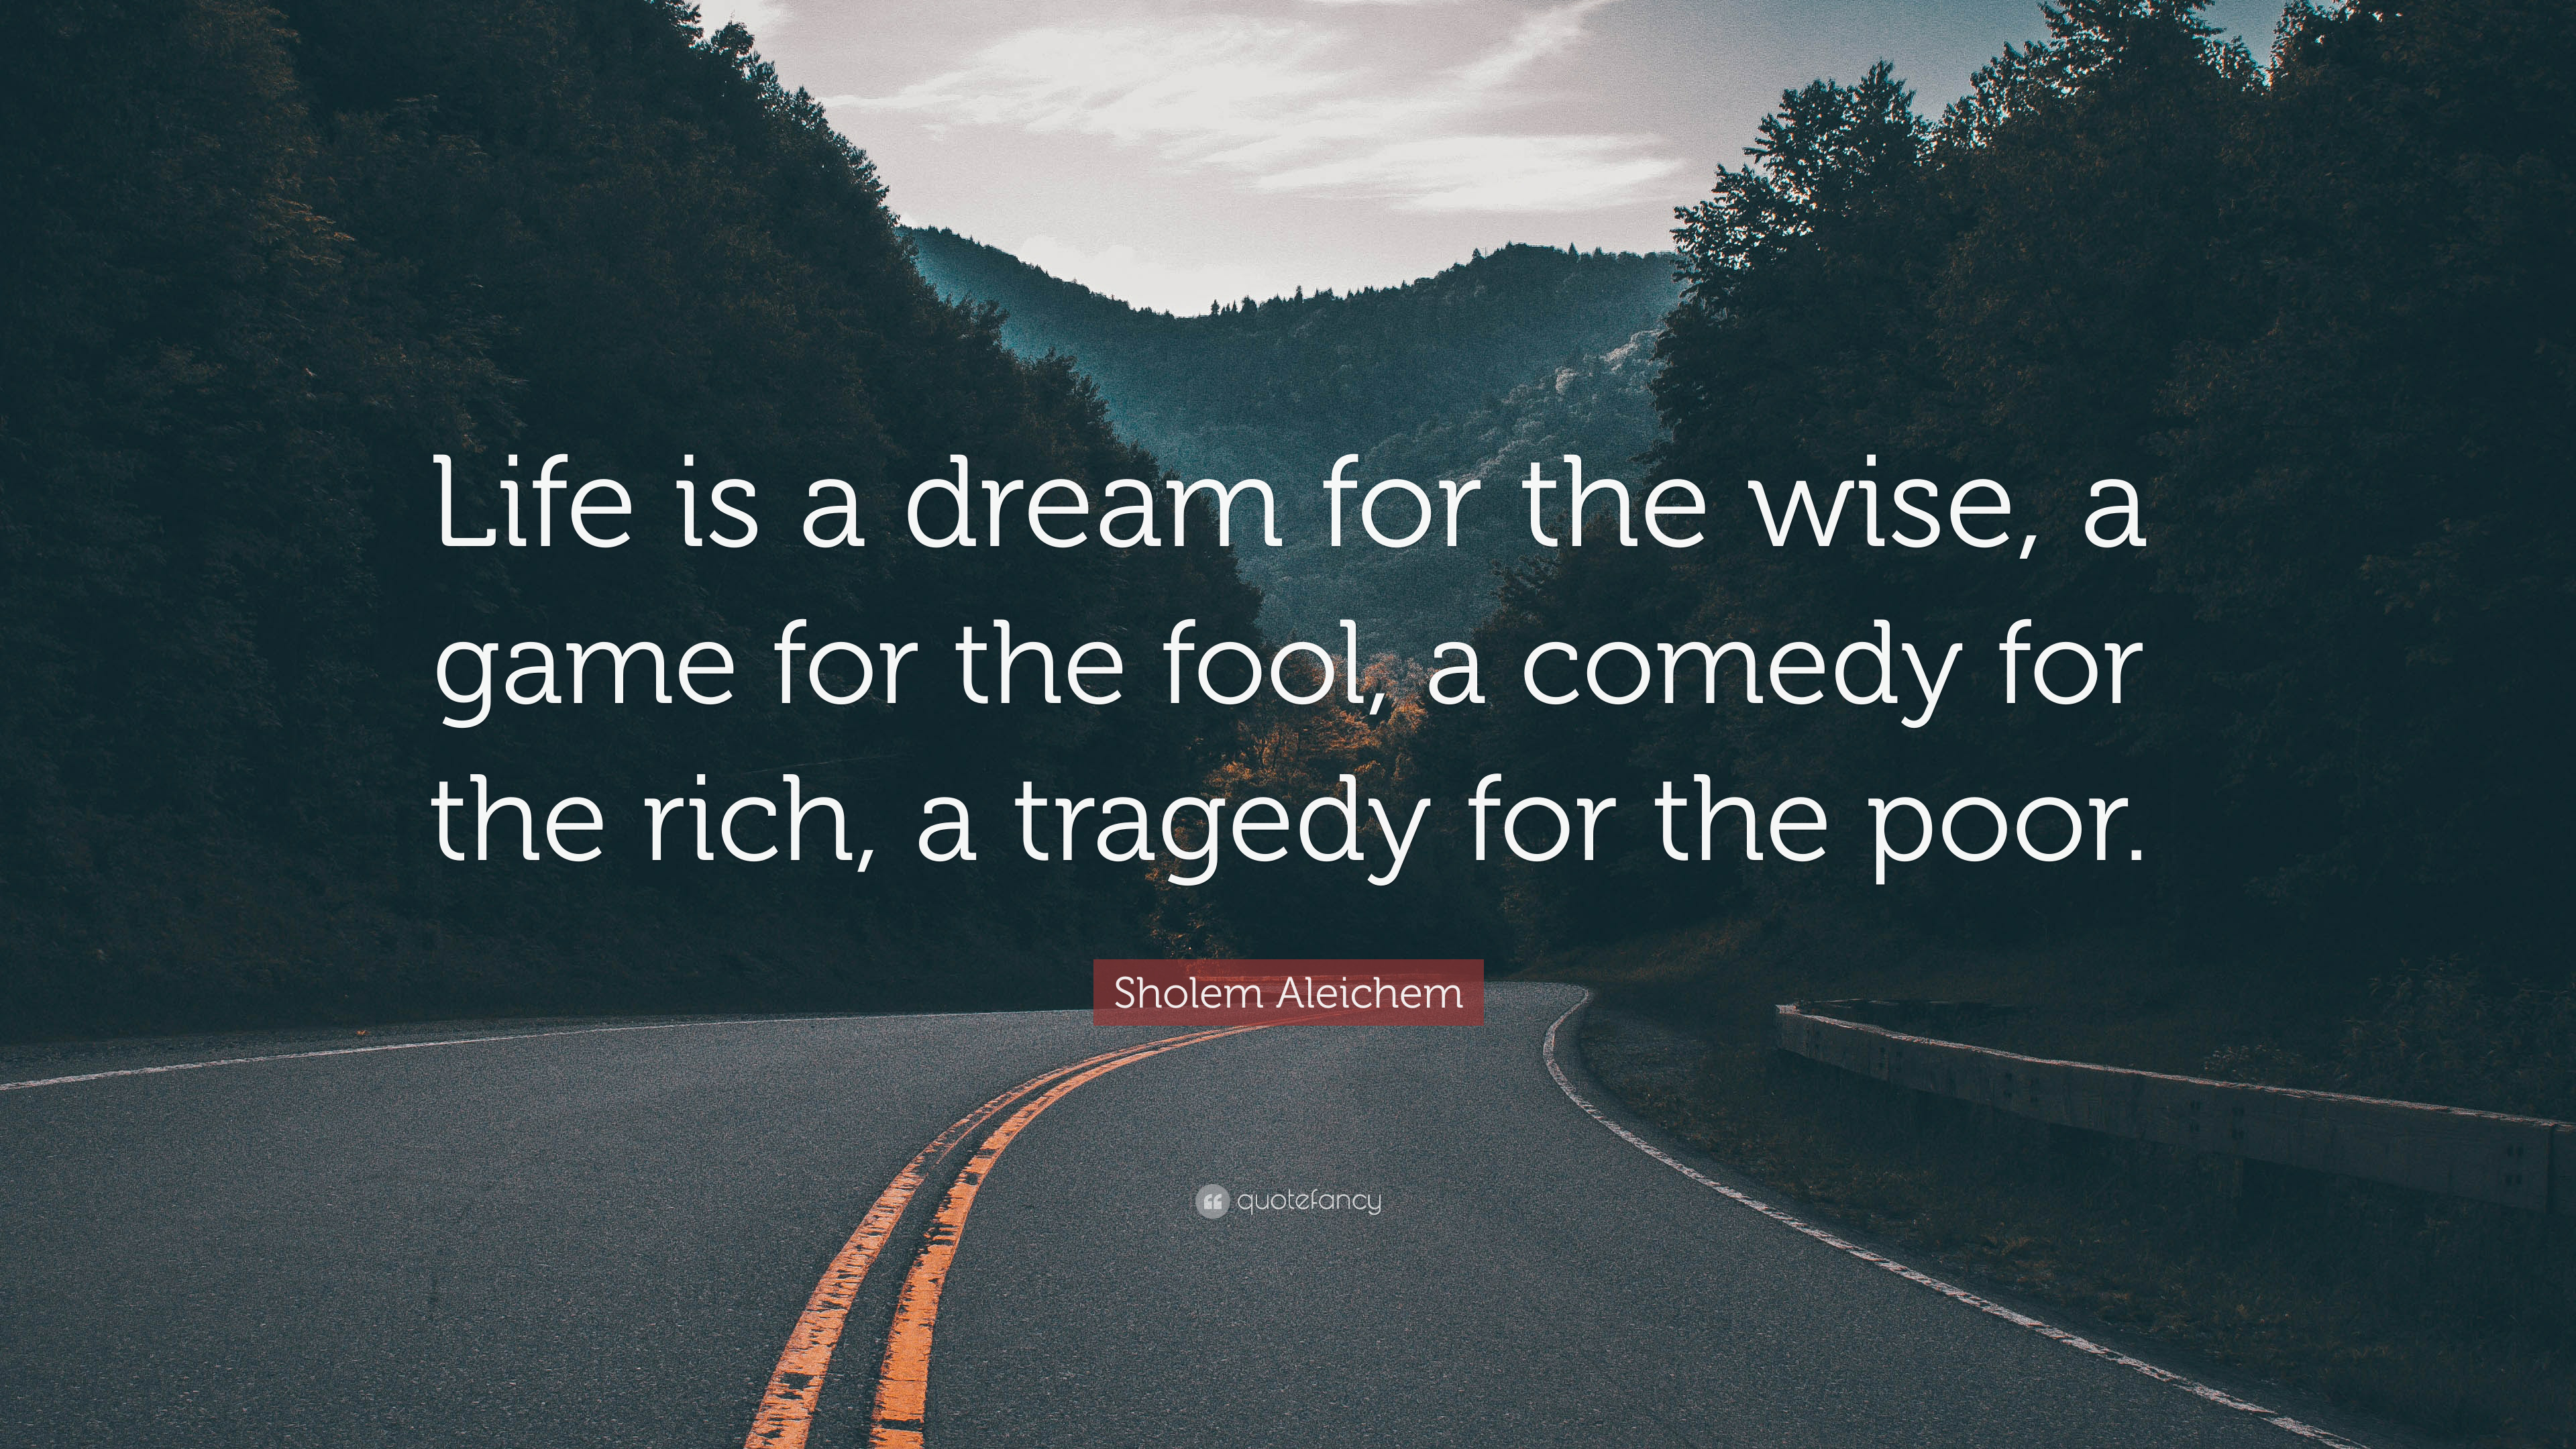 Sholem Aleichem Quote: U201cLife Is A Dream For The Wise, A Game For